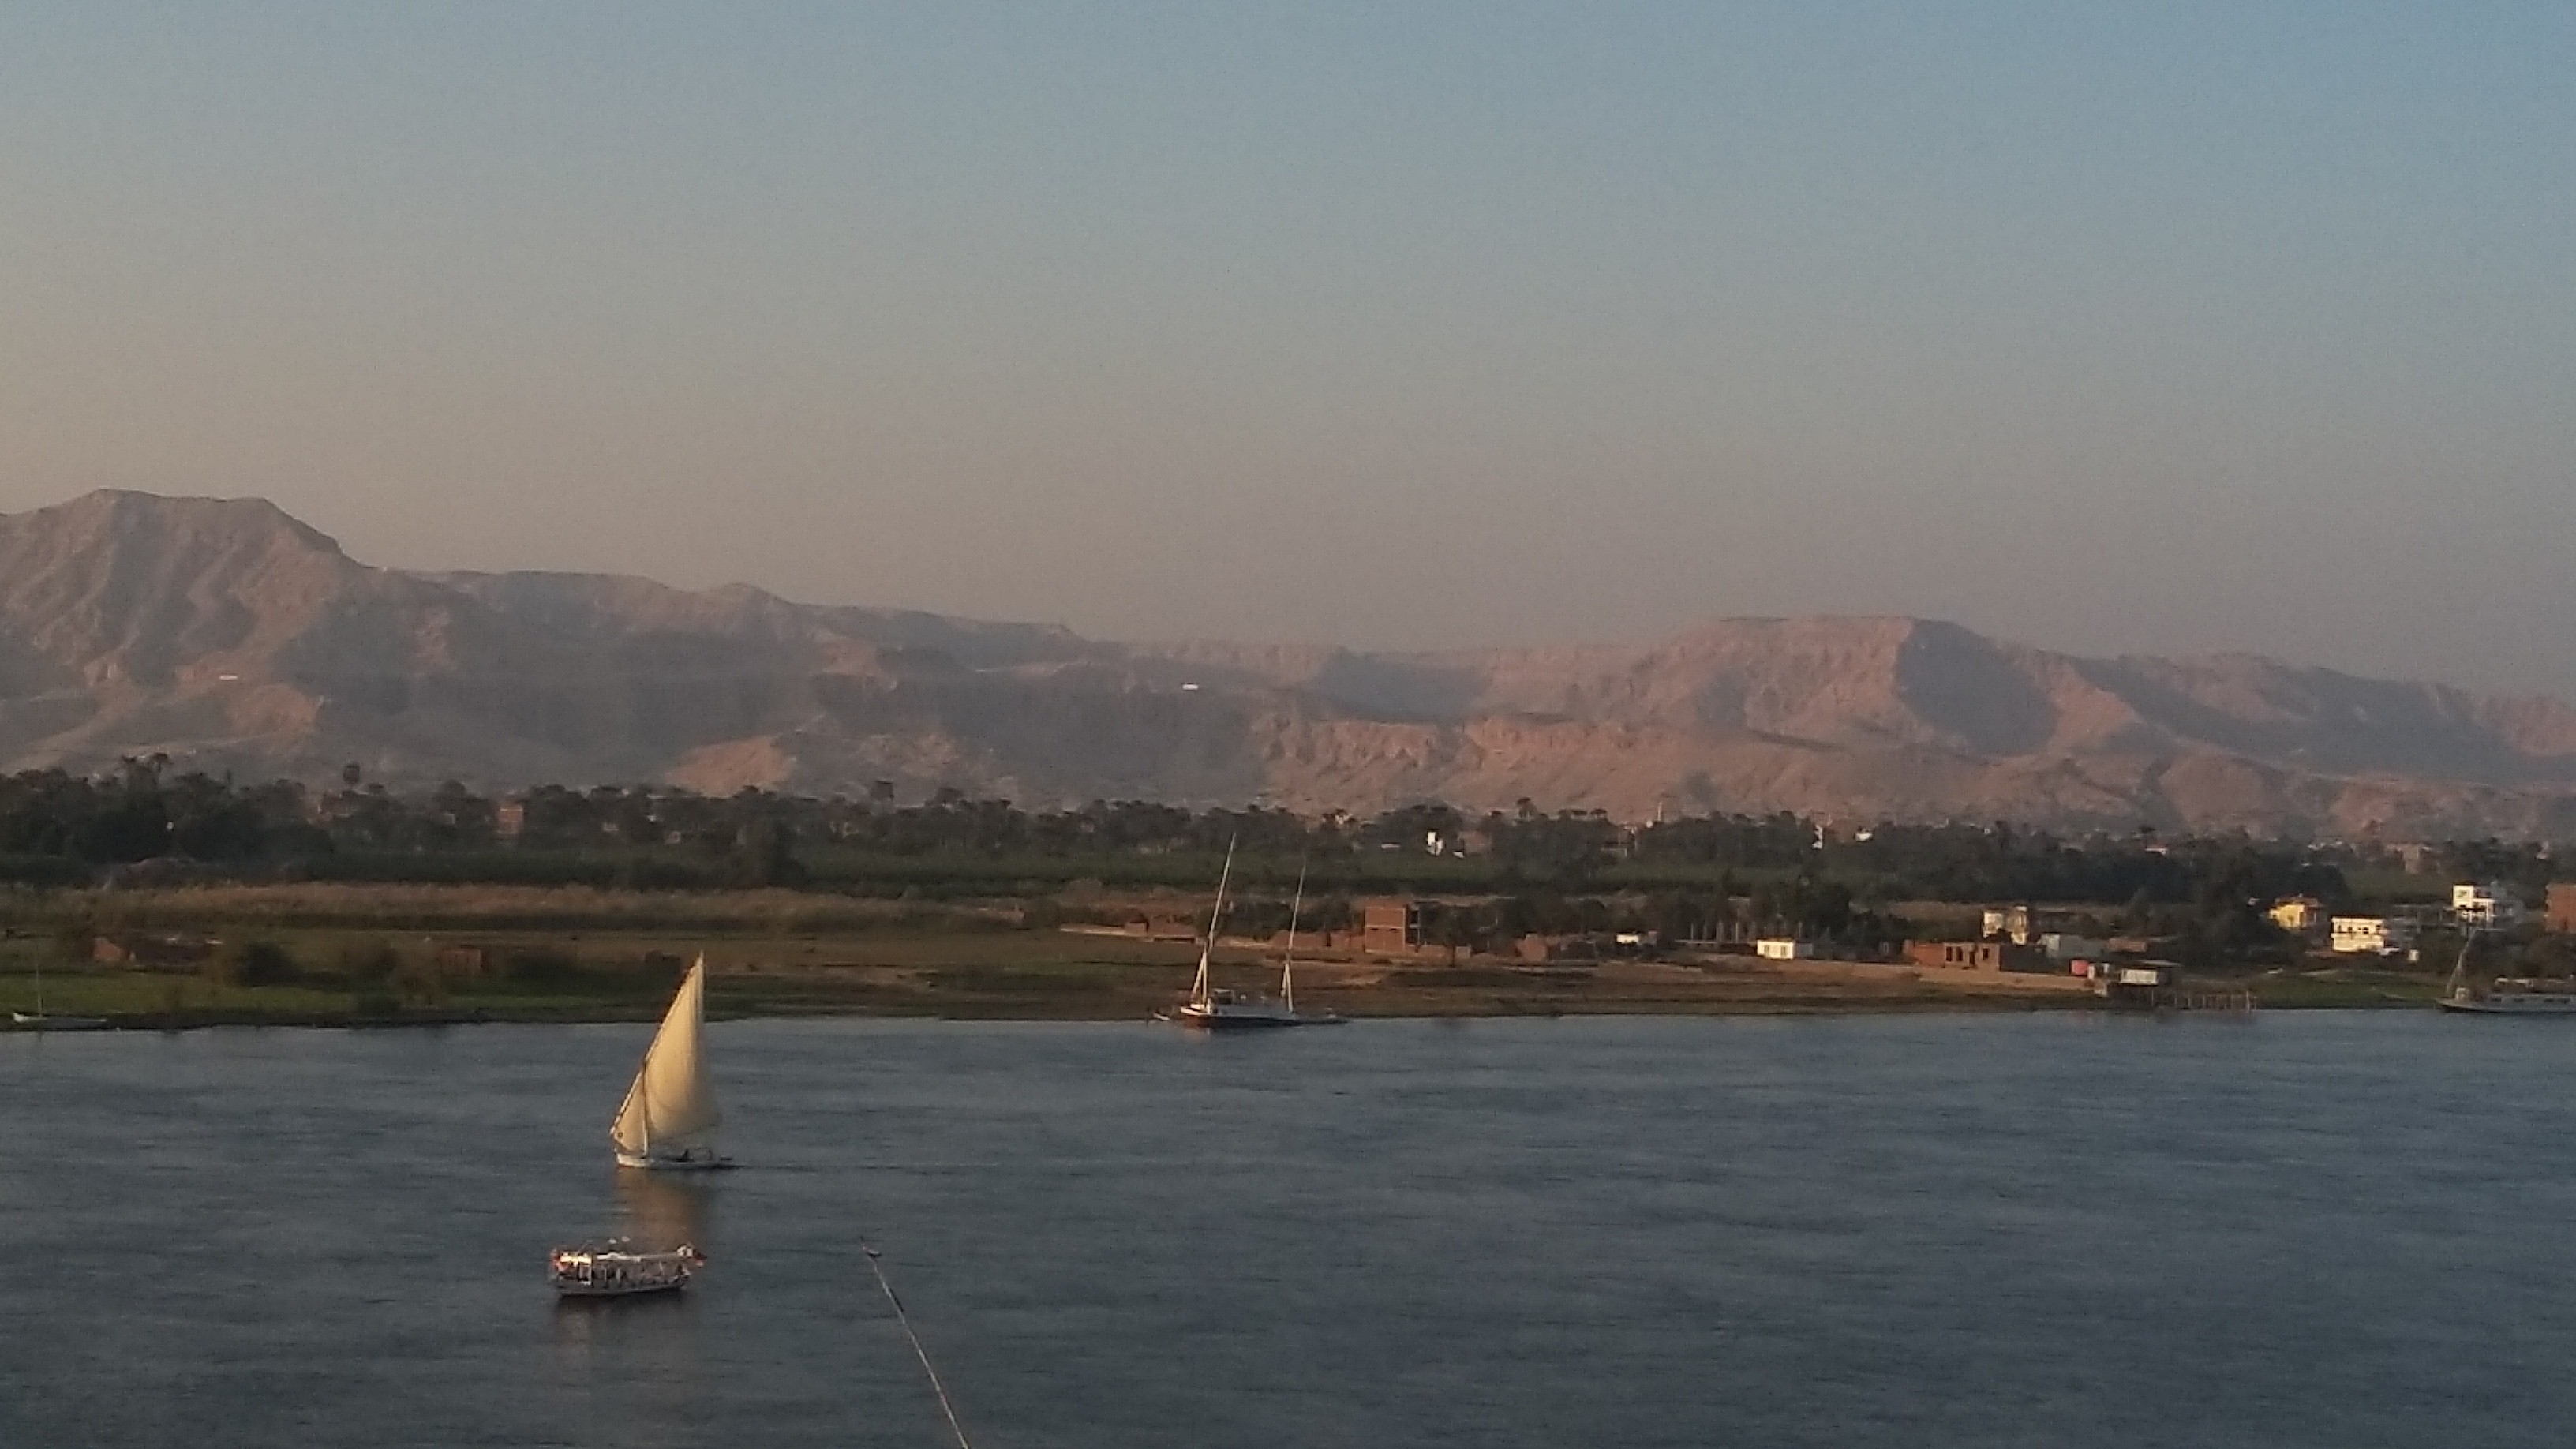 The Nile in Luxor